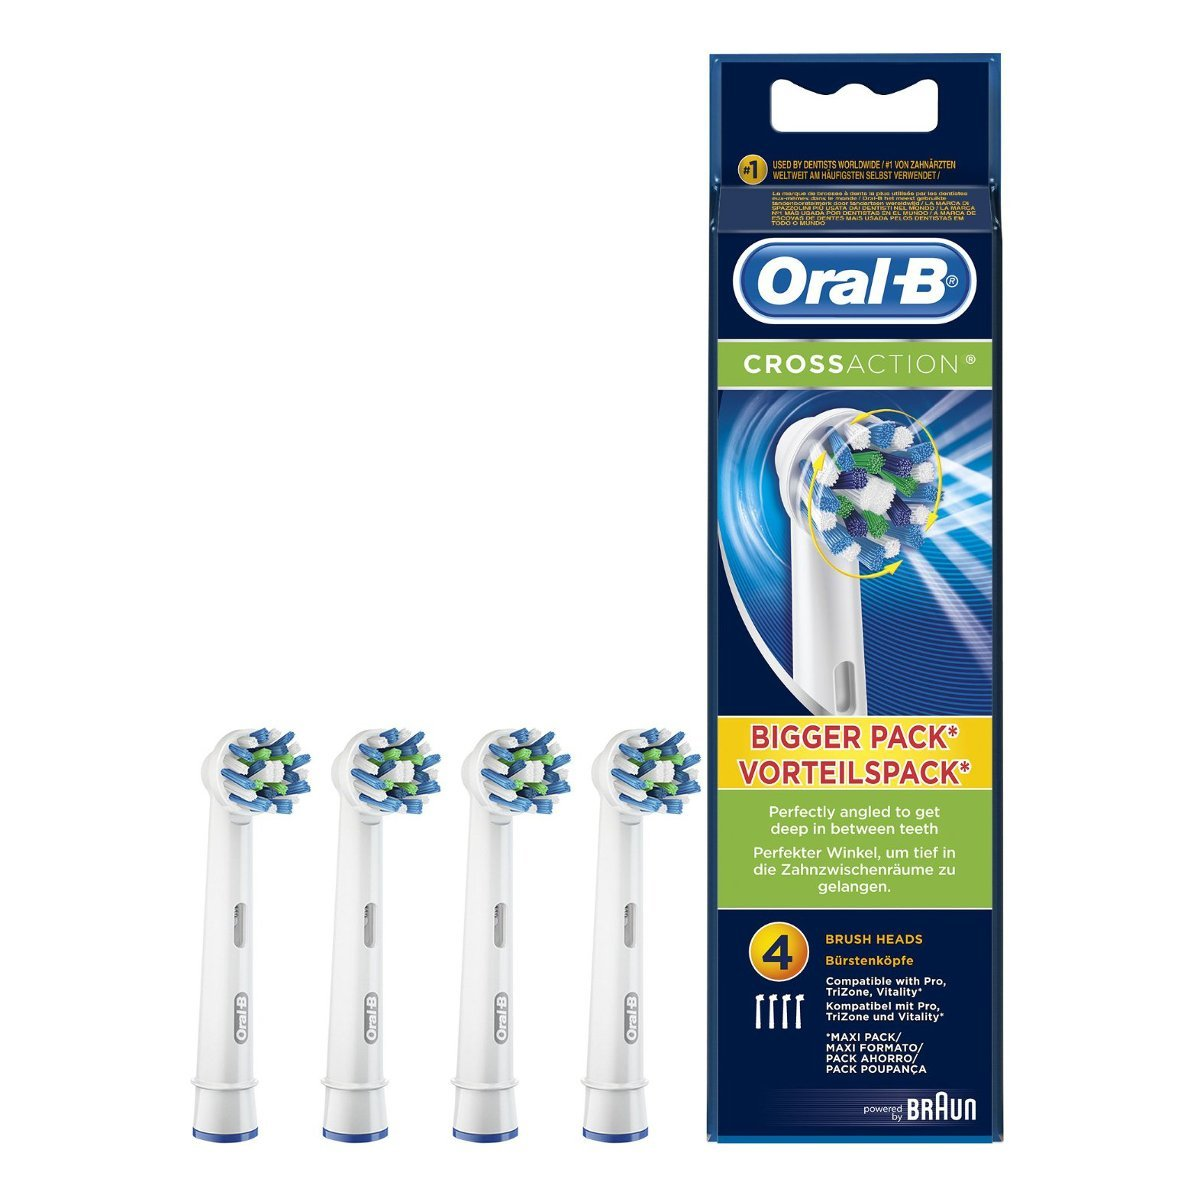 Oral-B CrossAction - Set de 4 recambios para cepillo de dientes eléctrico  recargable ( f5c5ca160970